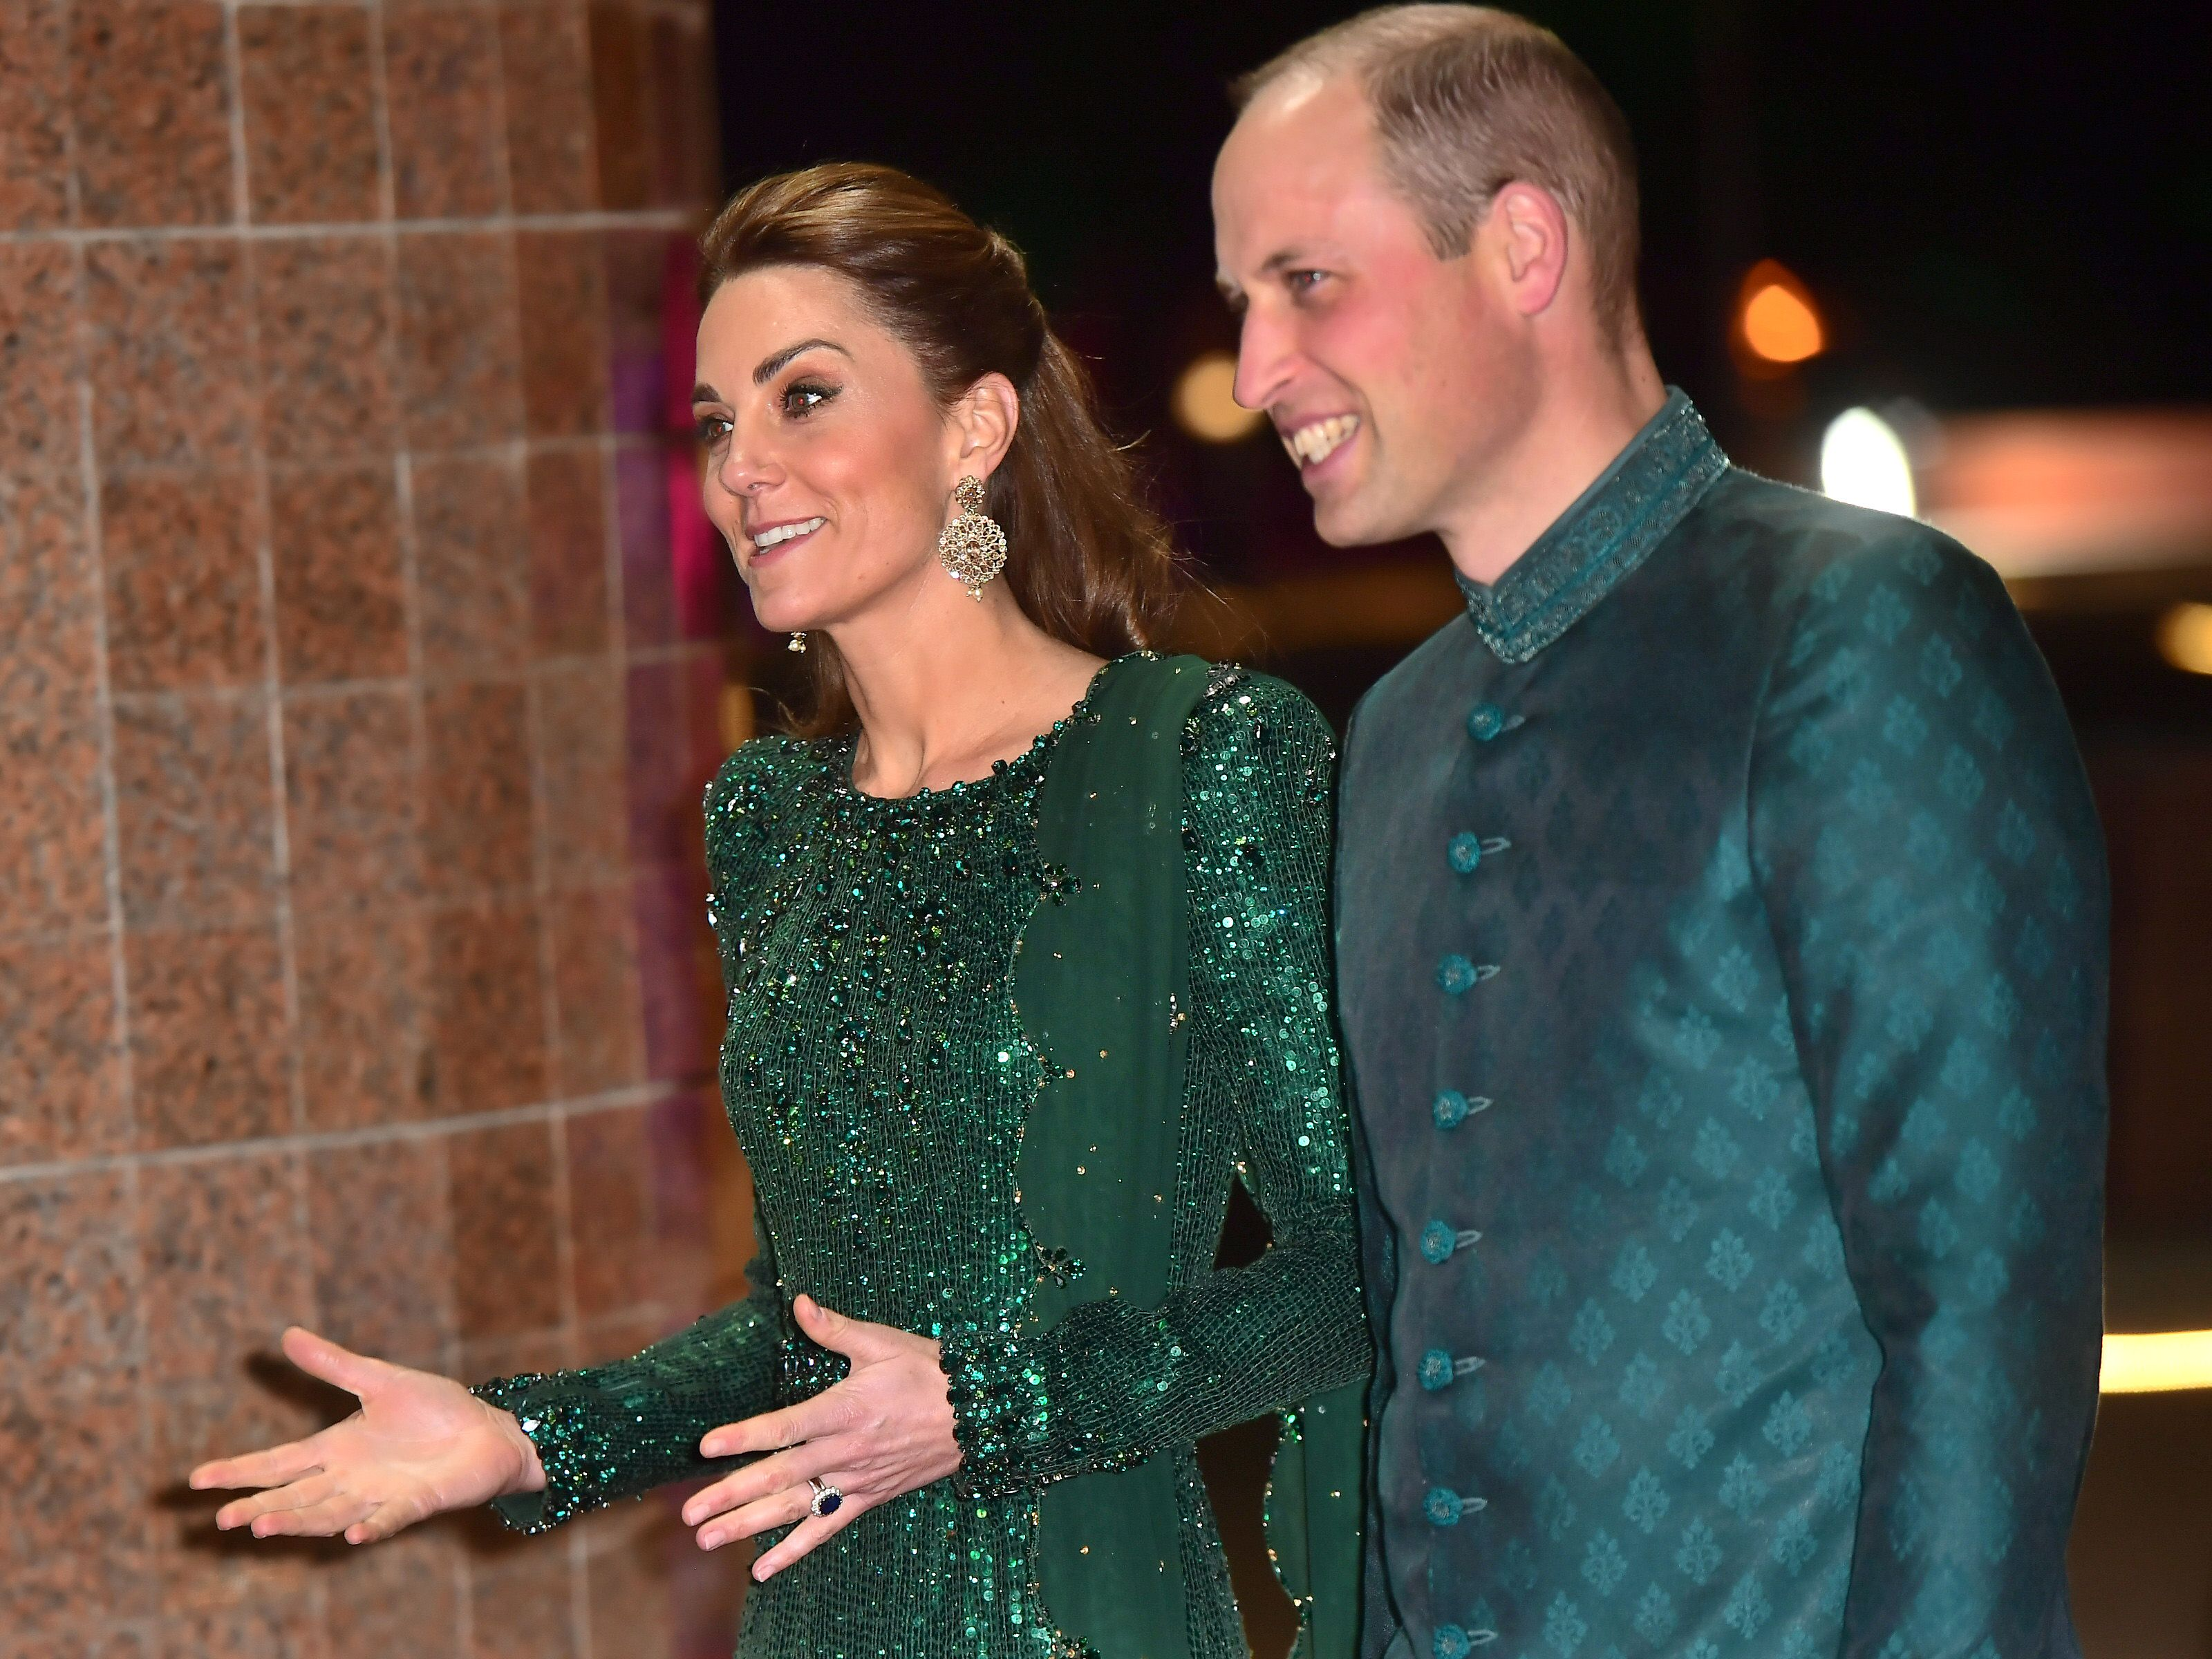 The Best Photos from Kate Middleton and Prince William's Royal Tour of Pakistan